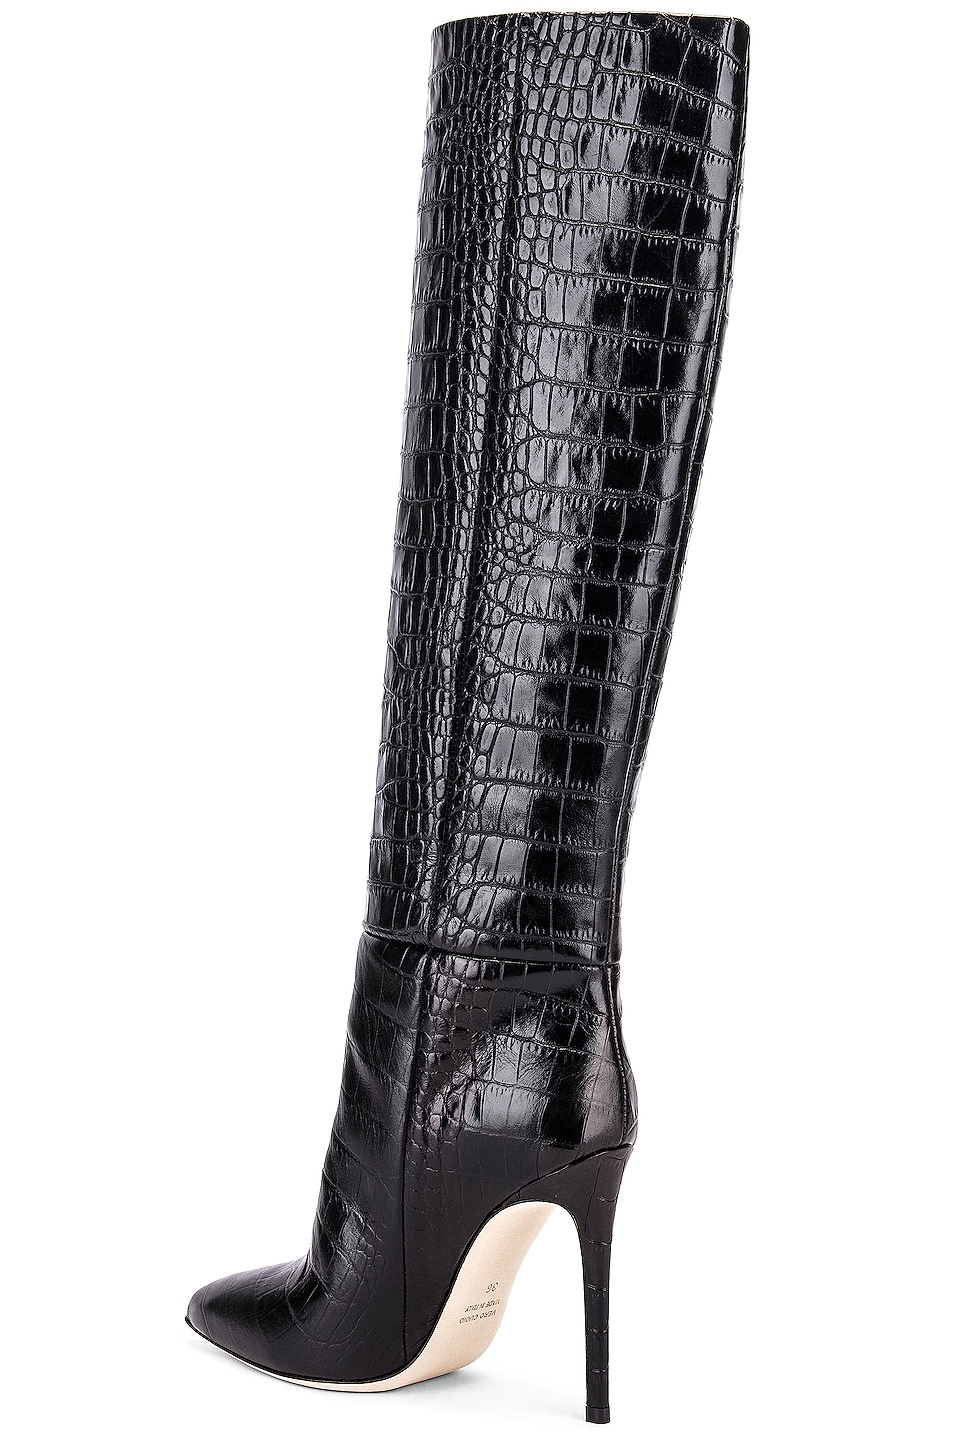 Image 5 of Paris Texas Moc Croco Tall Stiletto Boot in Black